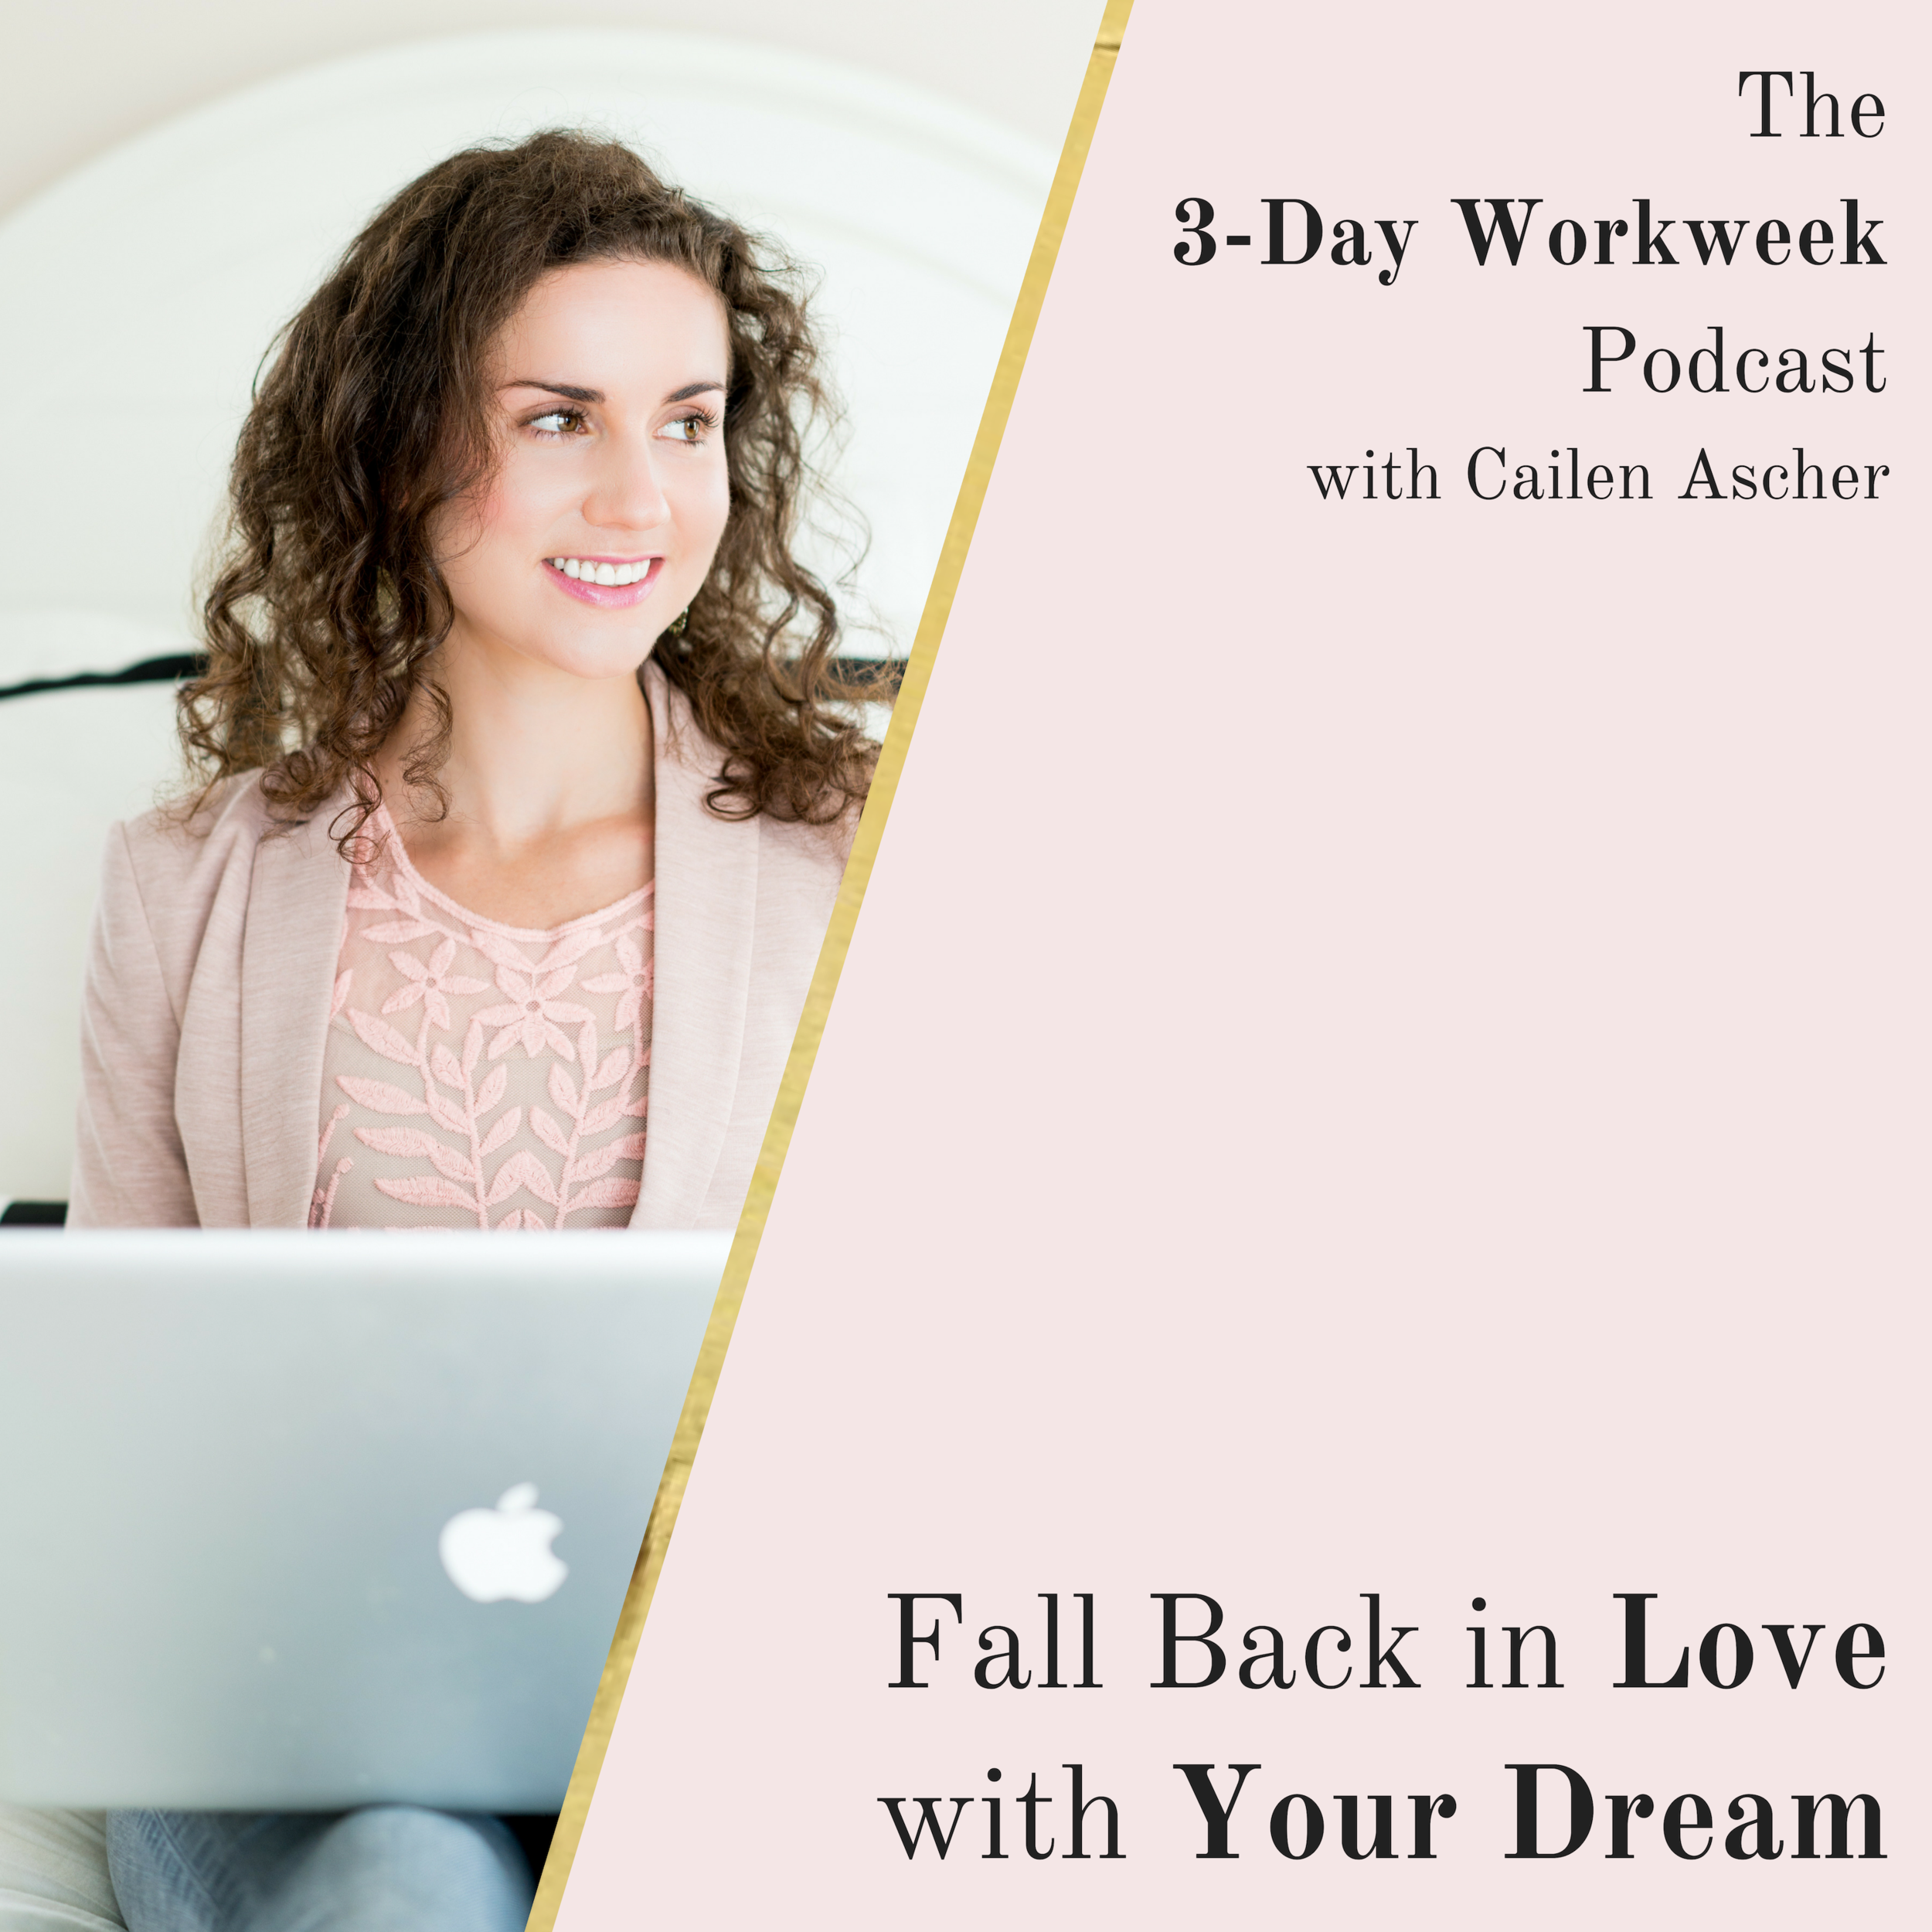 The 3-Day Workweek Podcast with Cailen Ascher - 2019-01-23 - PROMO IMAGE - Fall Back in Love with Your Dream.png